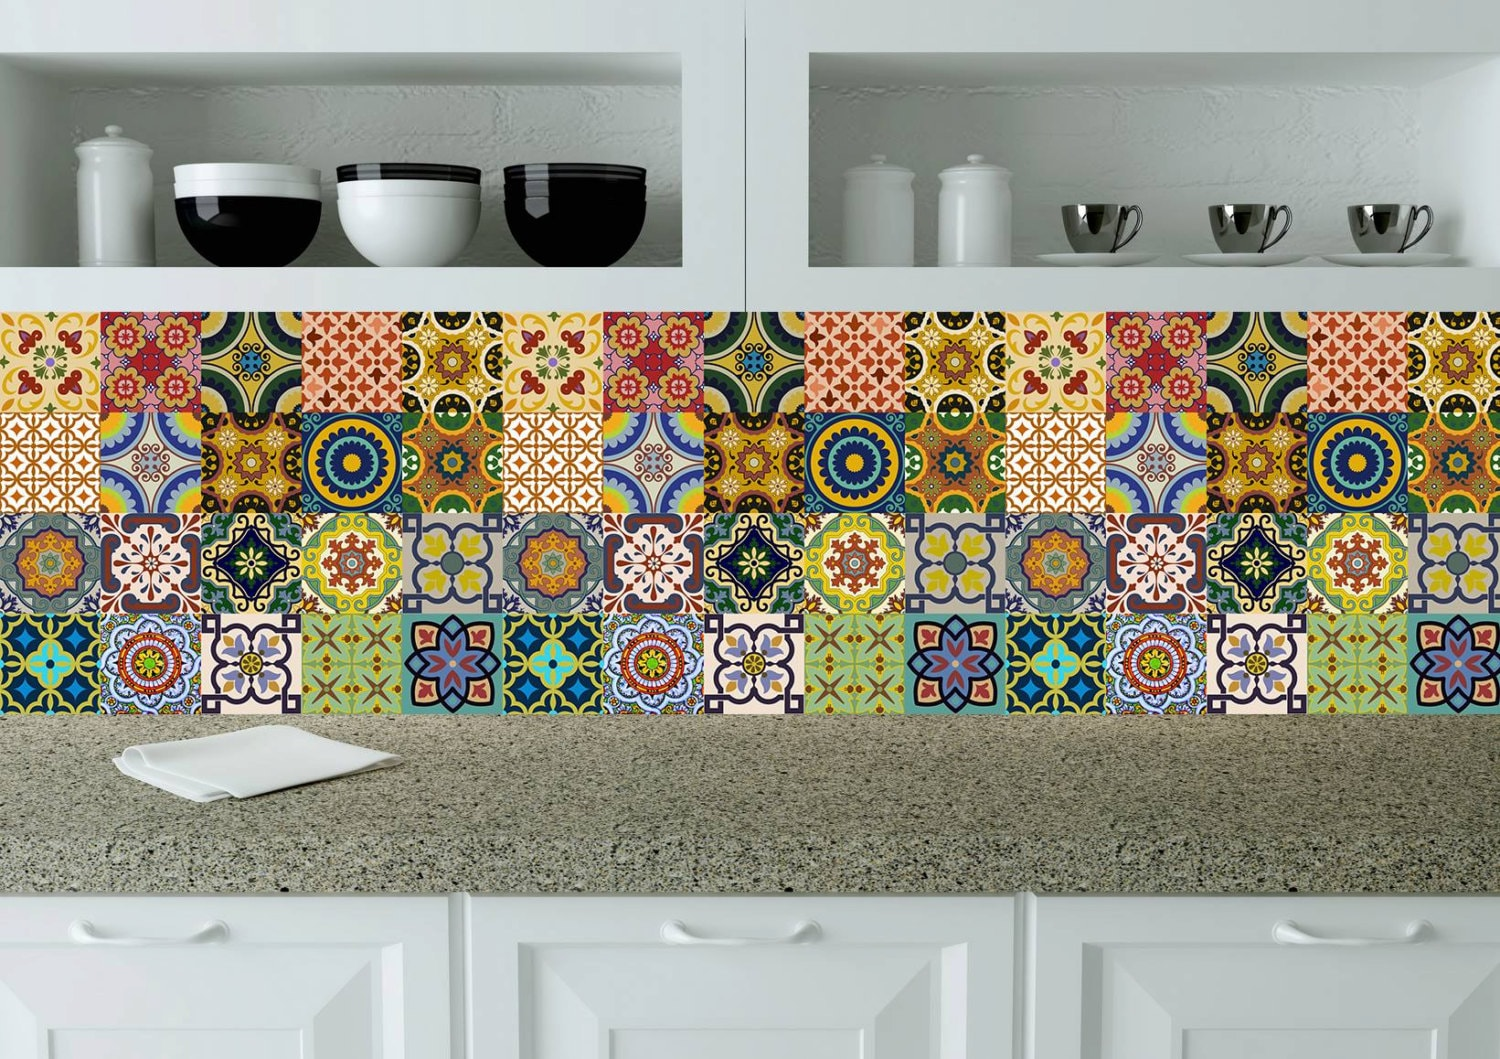 Splashback 24 units tile stickers kitchen decals wall mural for Carreau cuisine mural